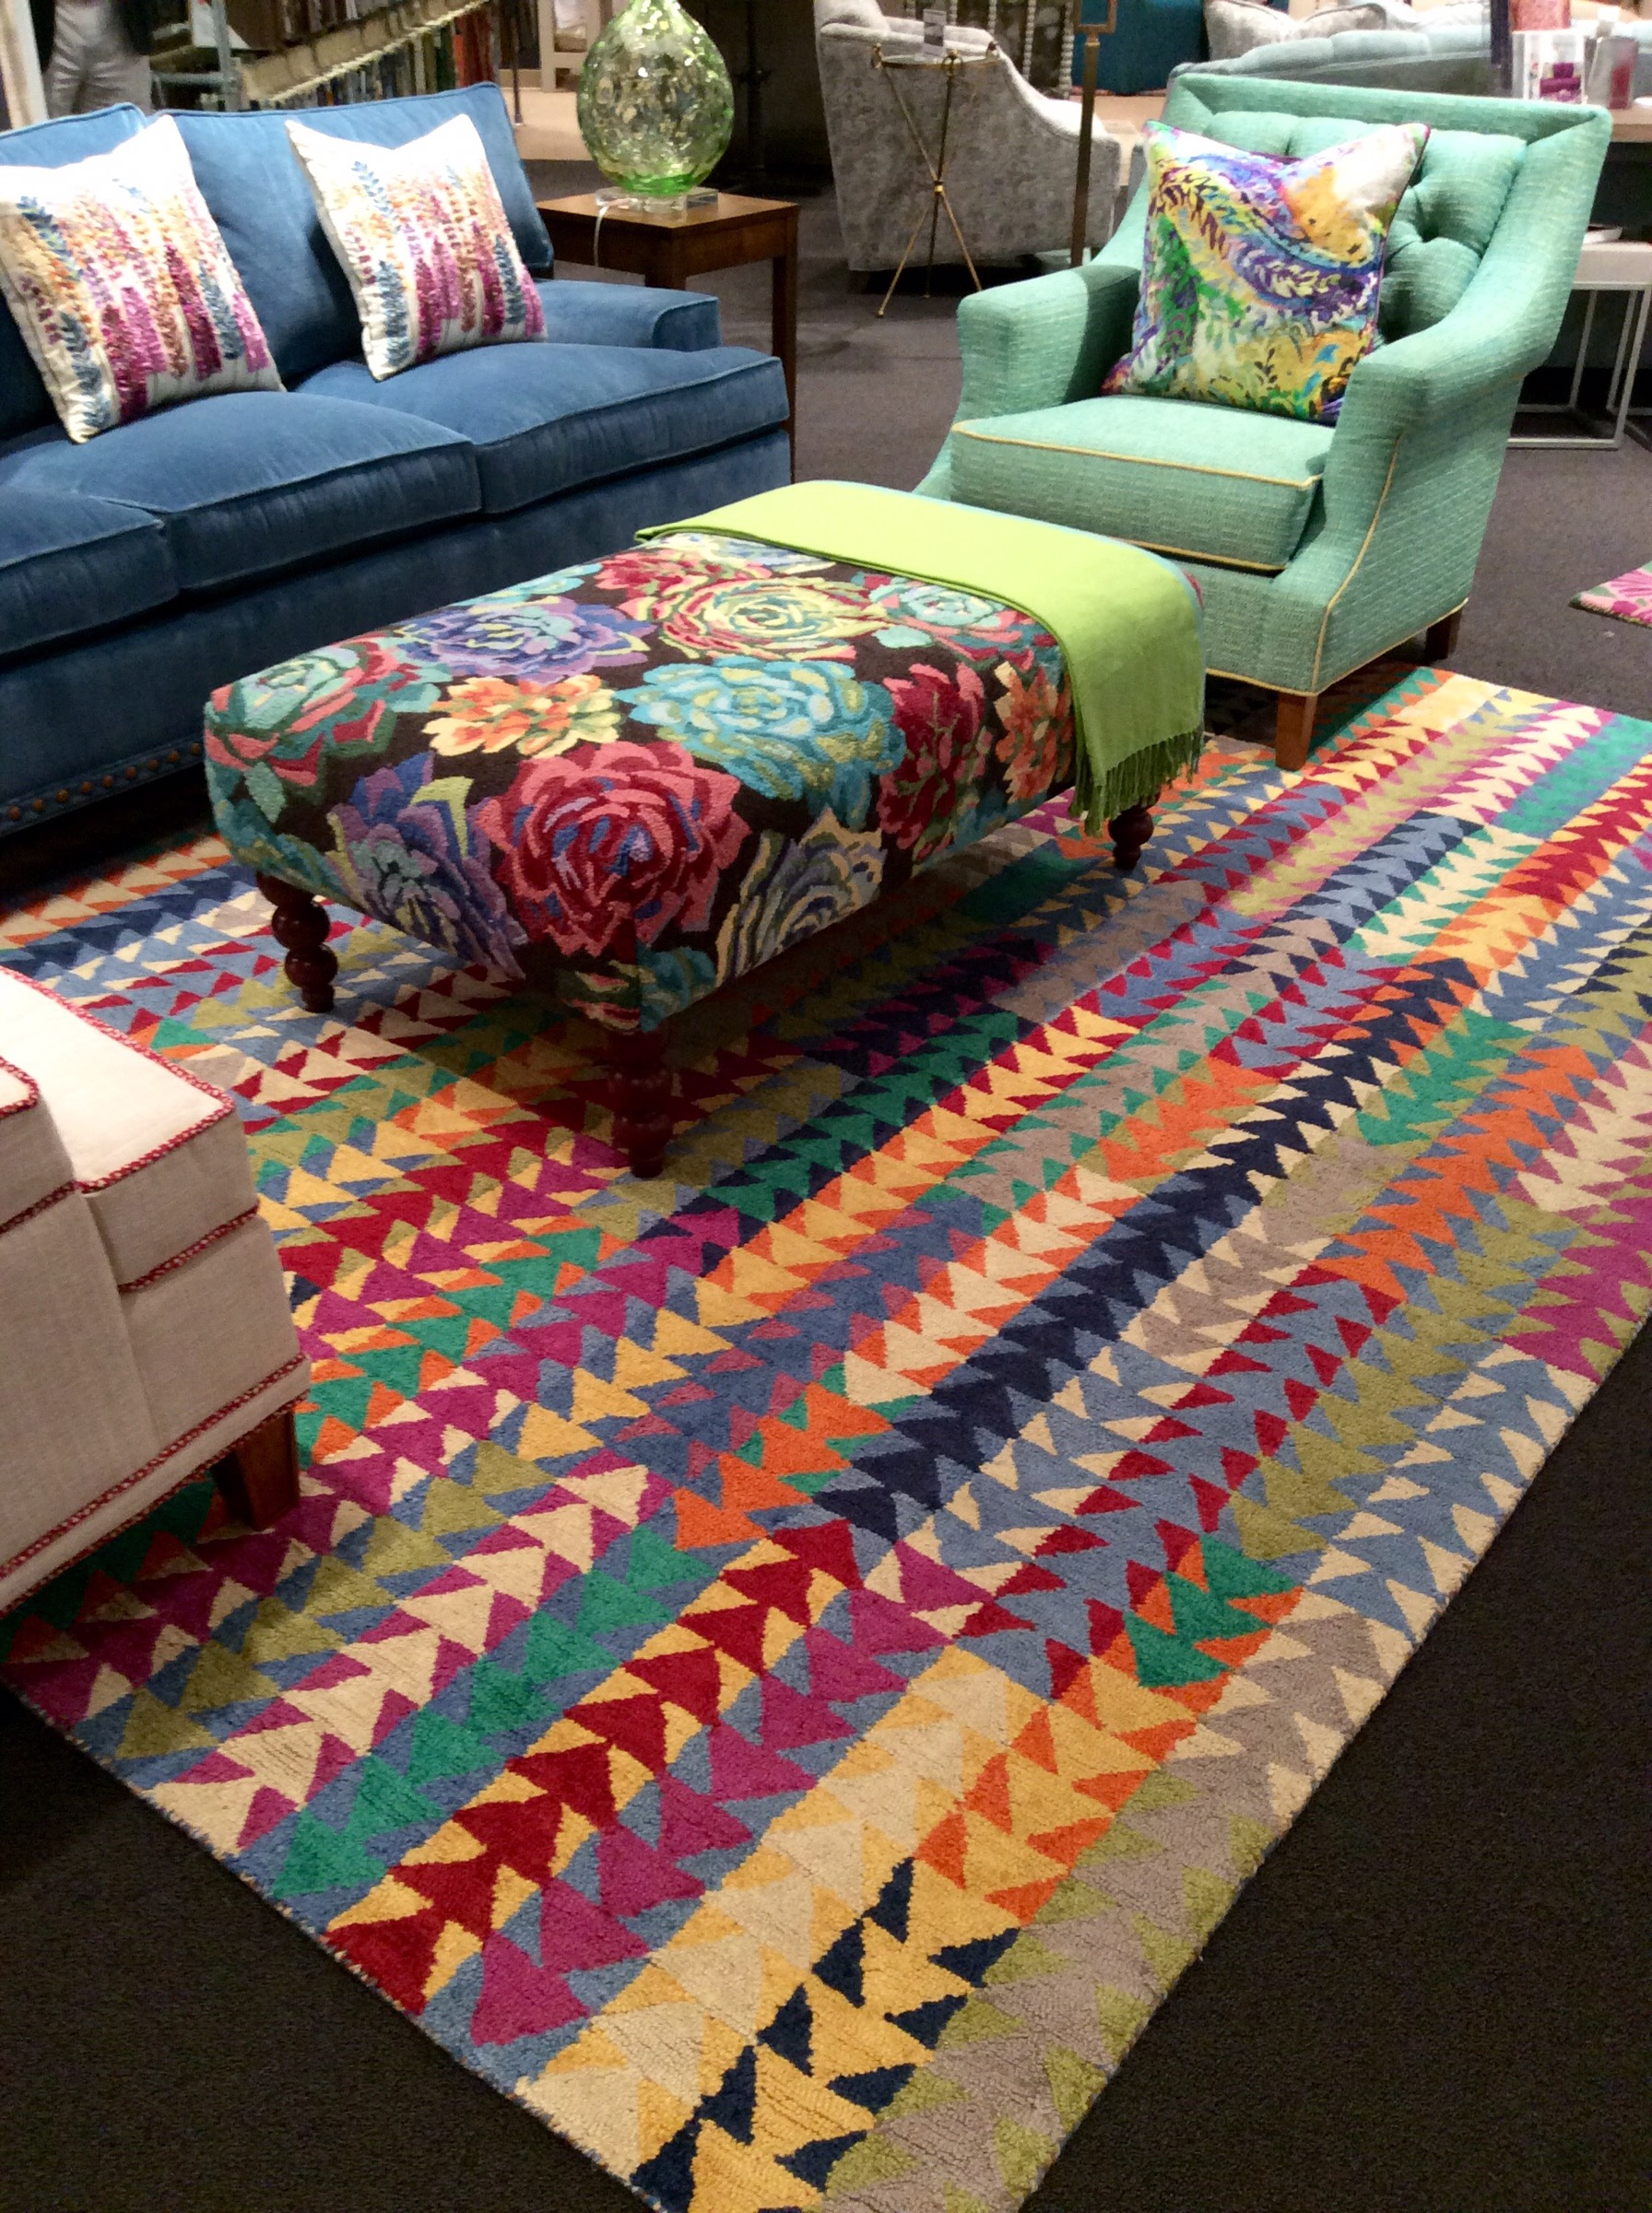 Merveilleux Company C Has Partnered With Norwalk Furniture To Create Their Beautiful  Rugs To Go Along With Norwalks Wonderful Furniture, And This Amazing, ...